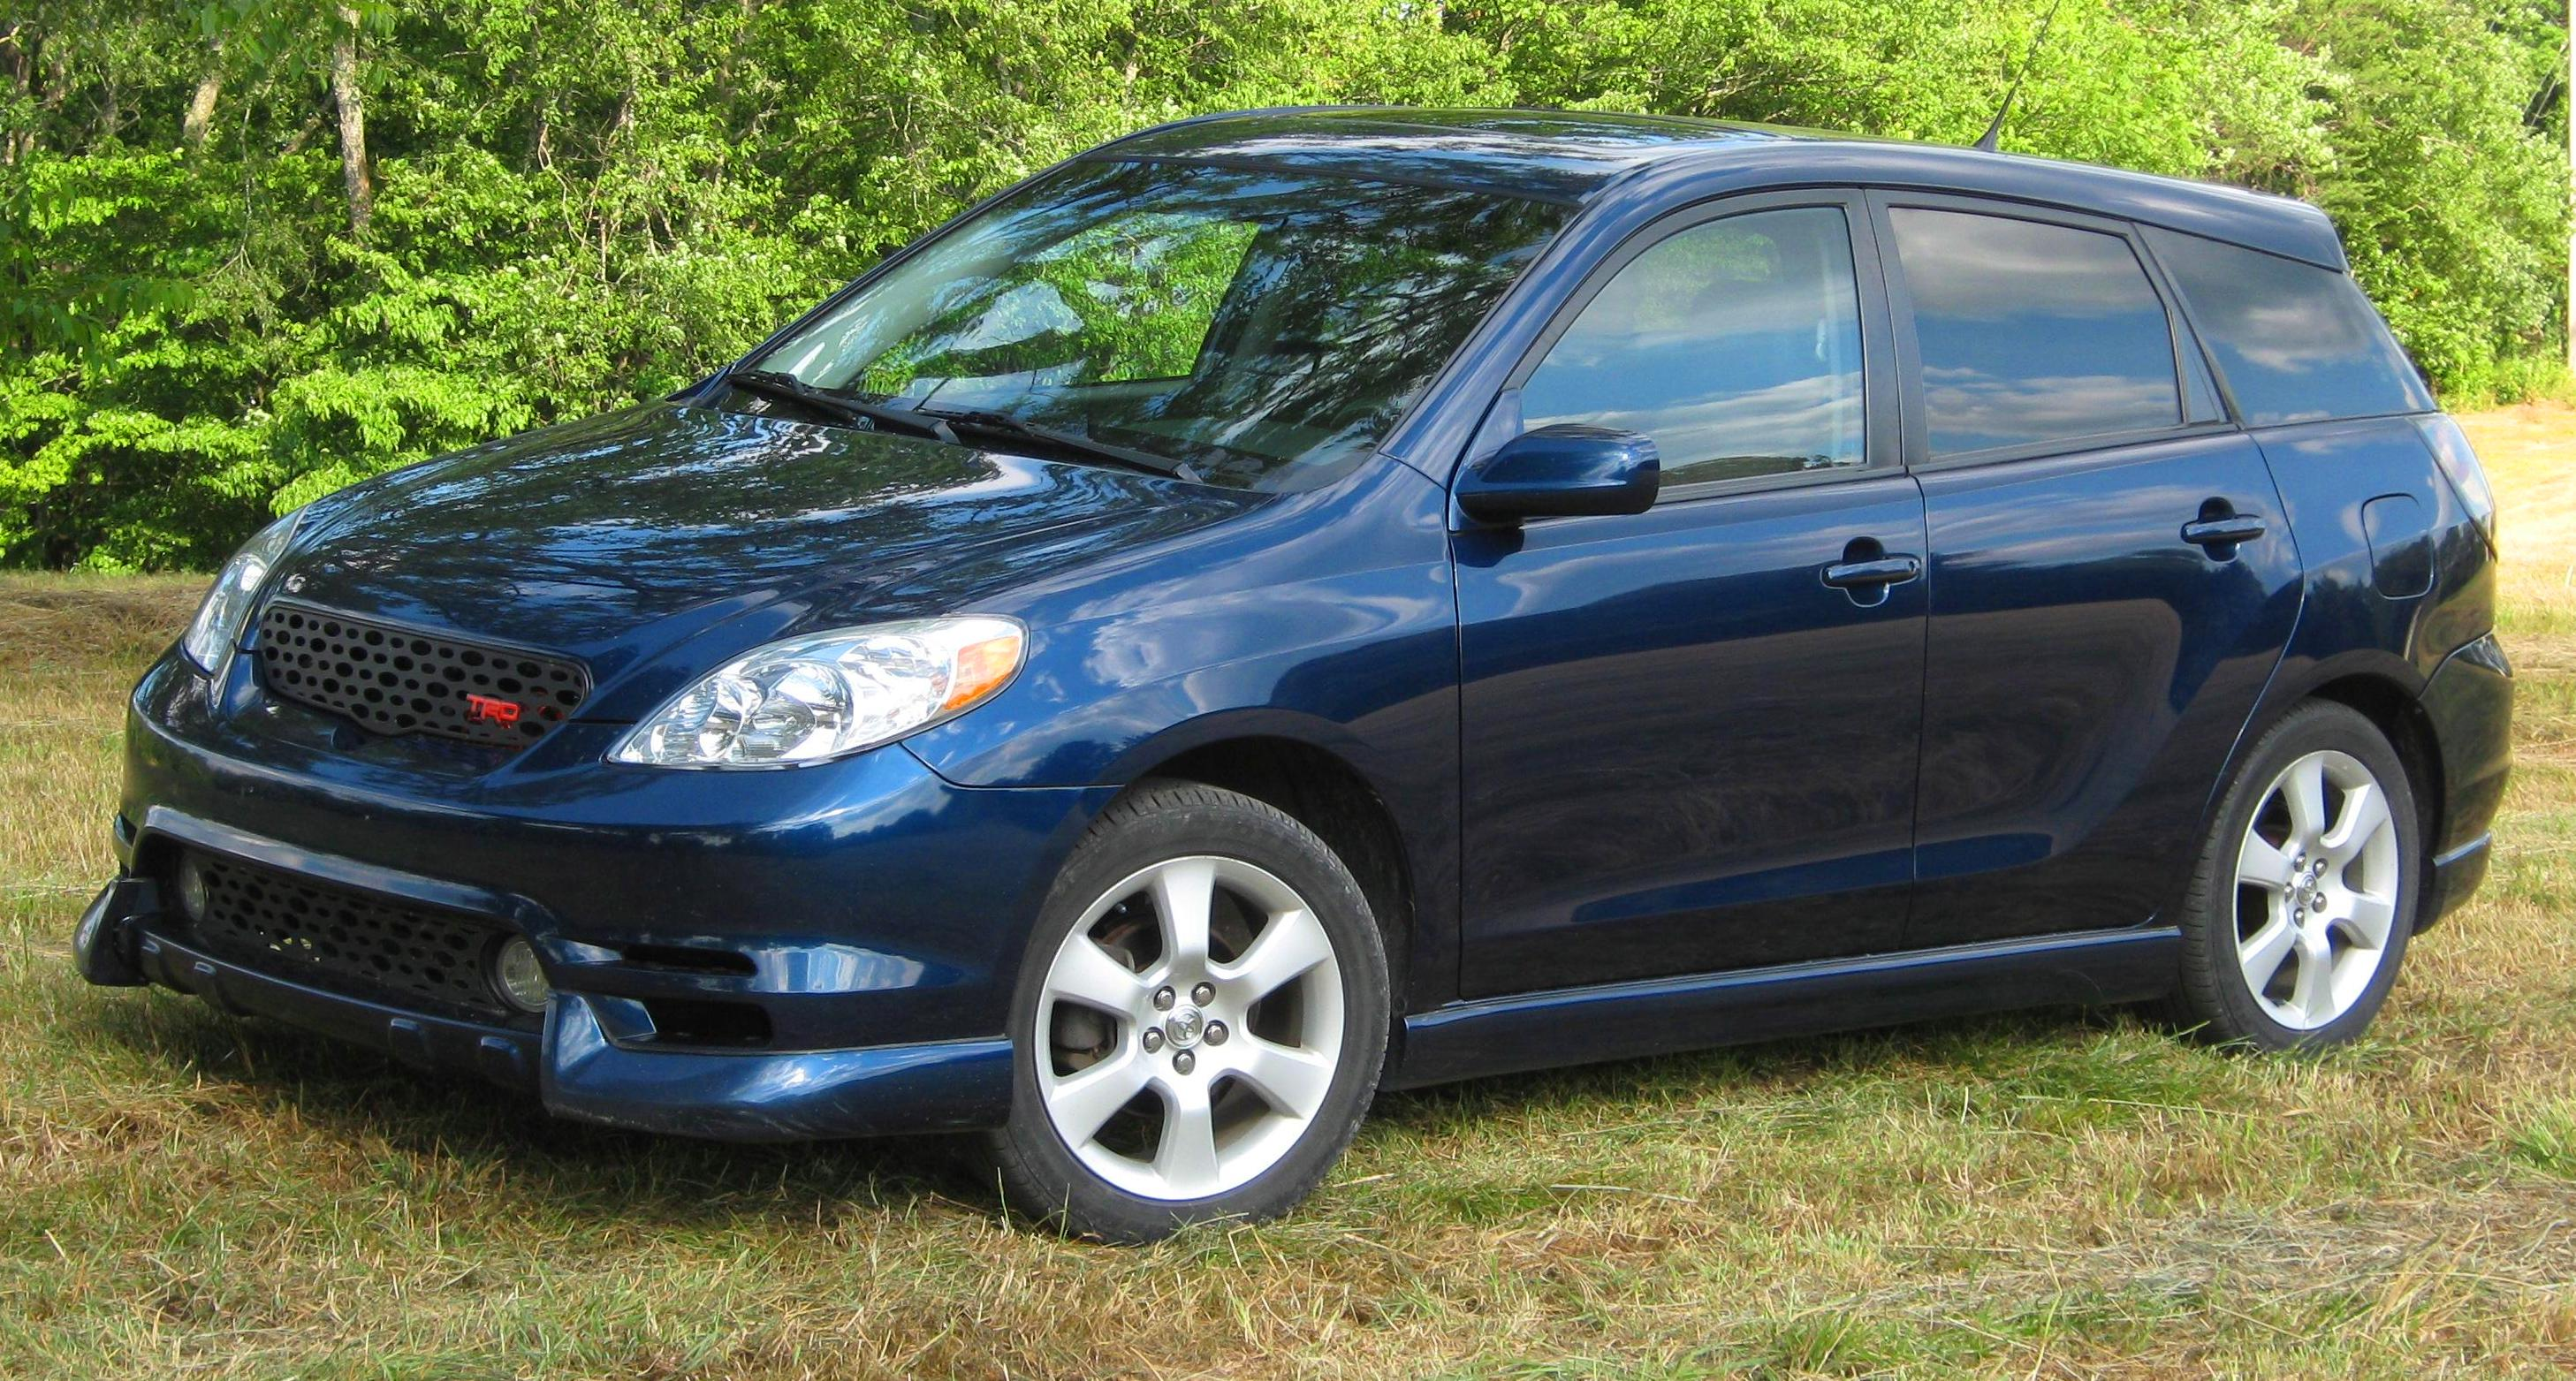 Toyota Matrix Wiki Everipedia HD Wallpapers Download free images and photos [musssic.tk]